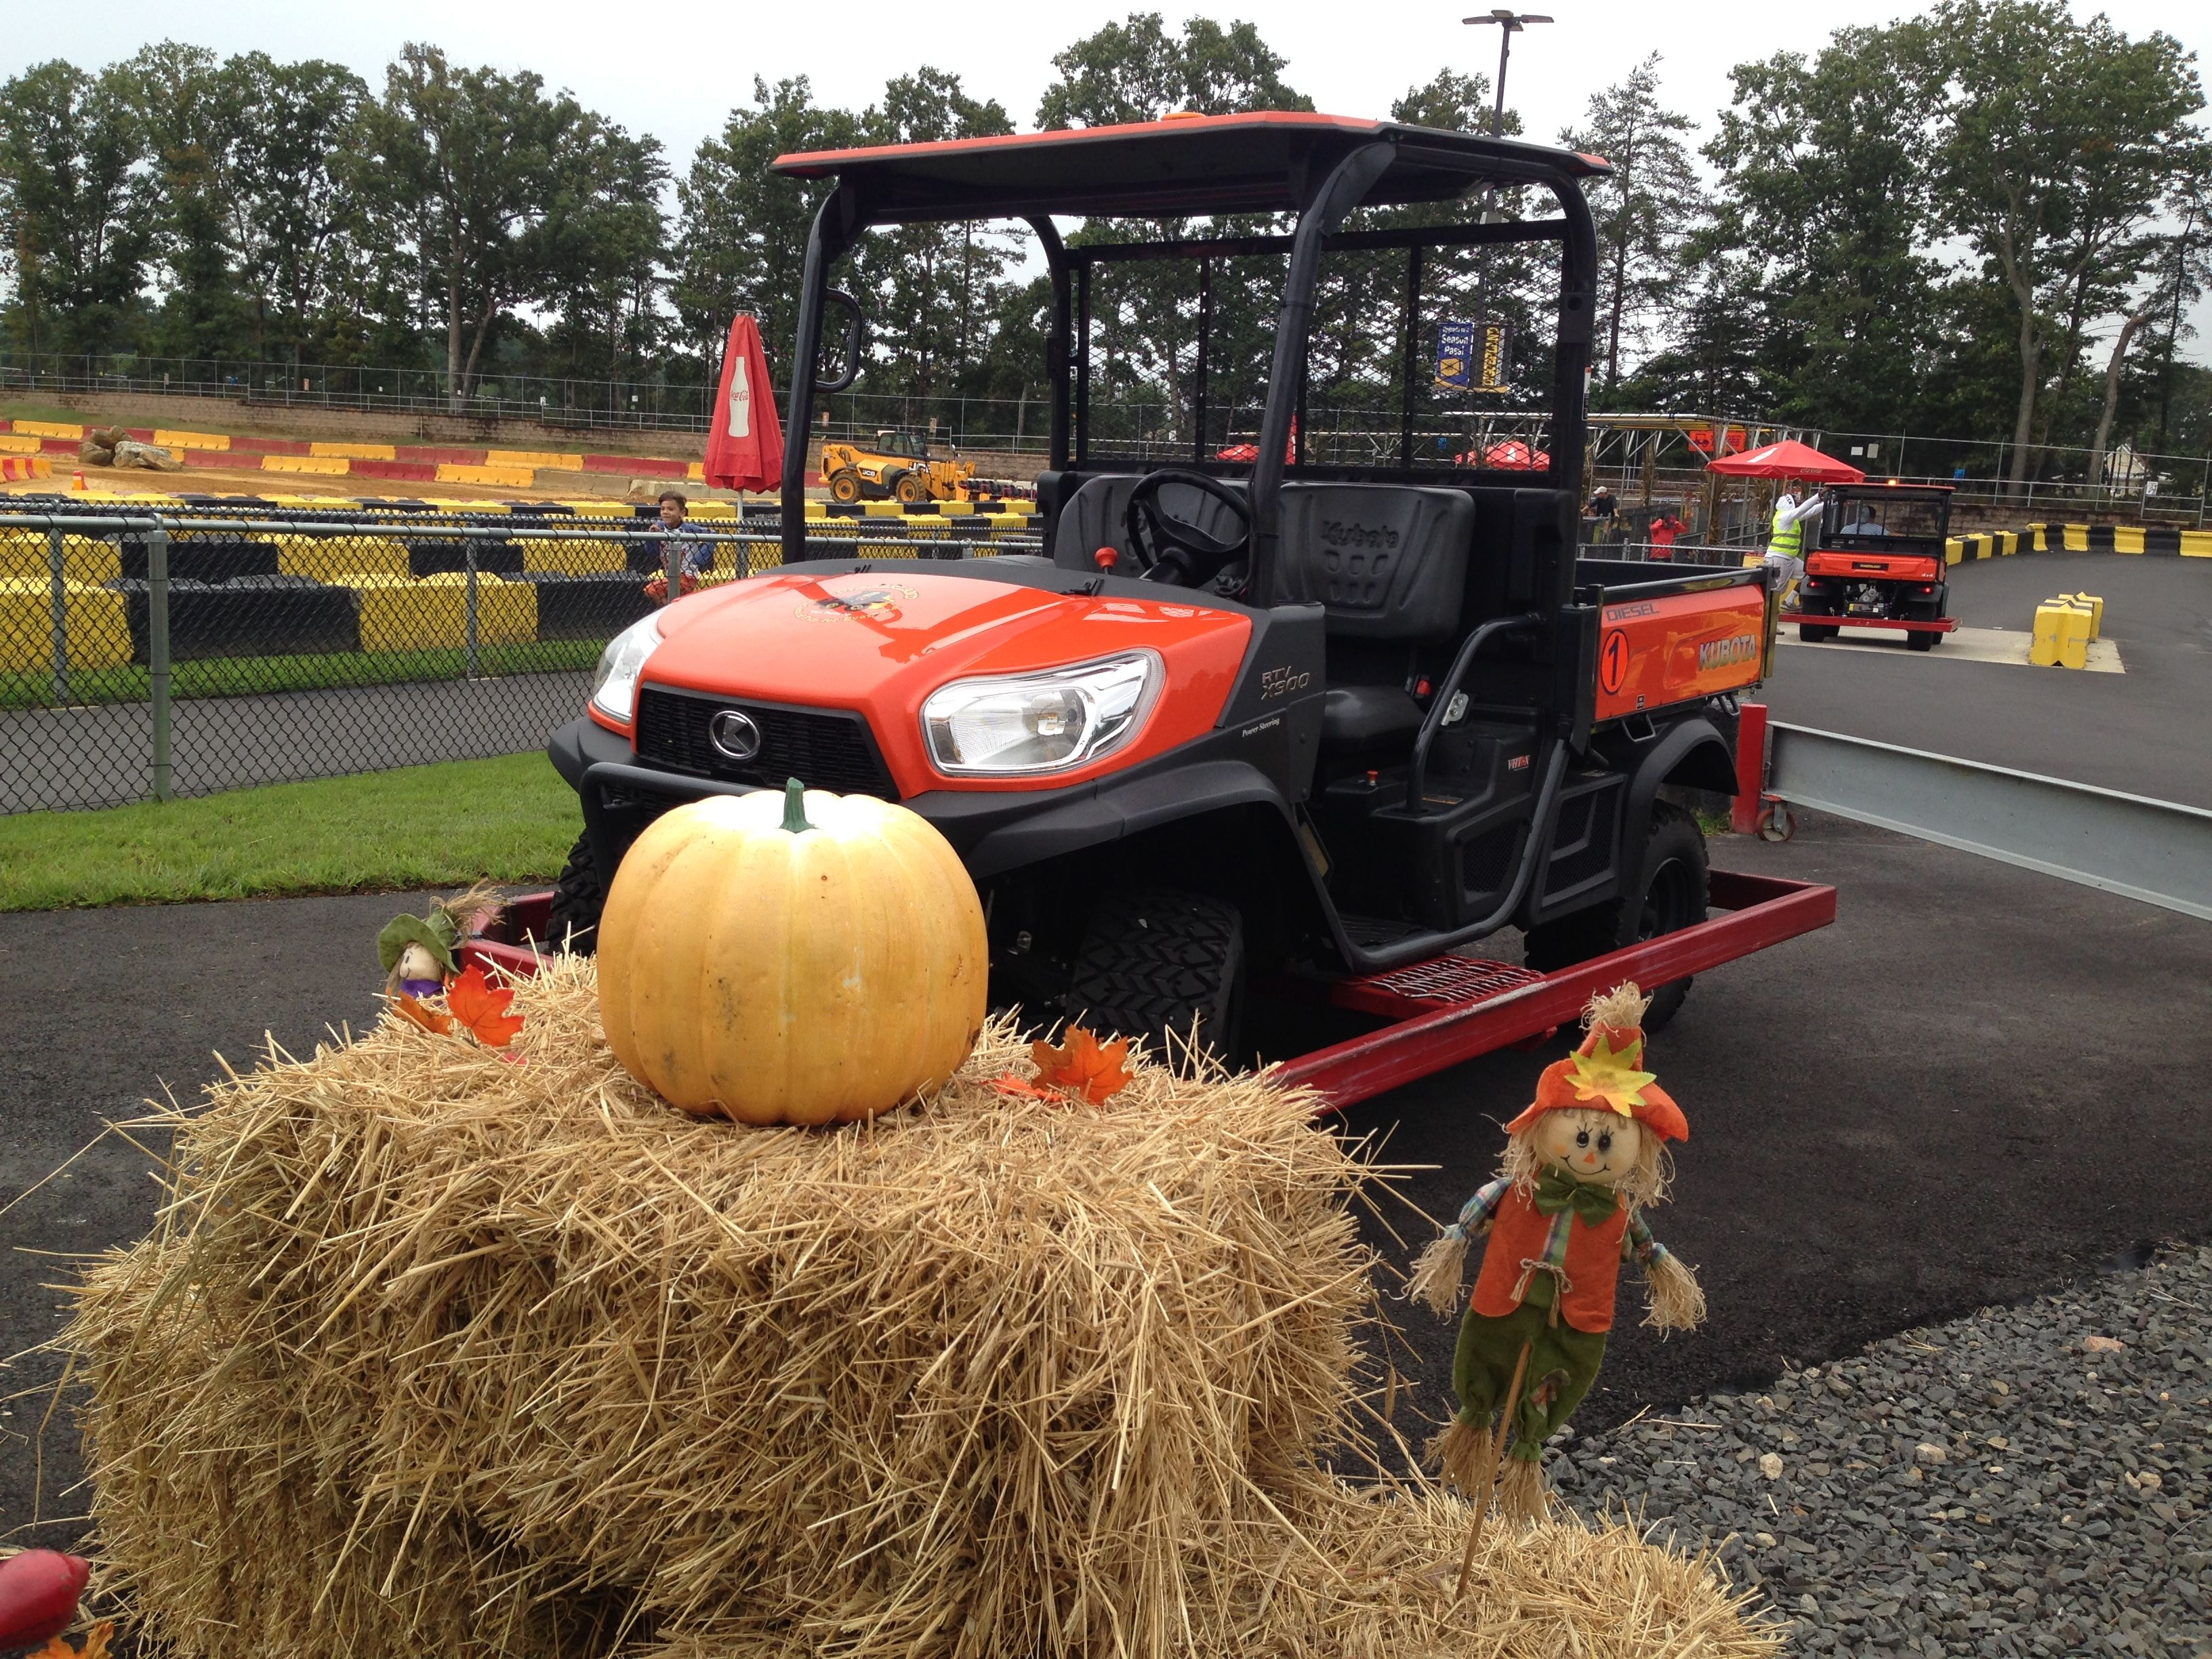 Pin by Diggerland USA on Special Events (With images